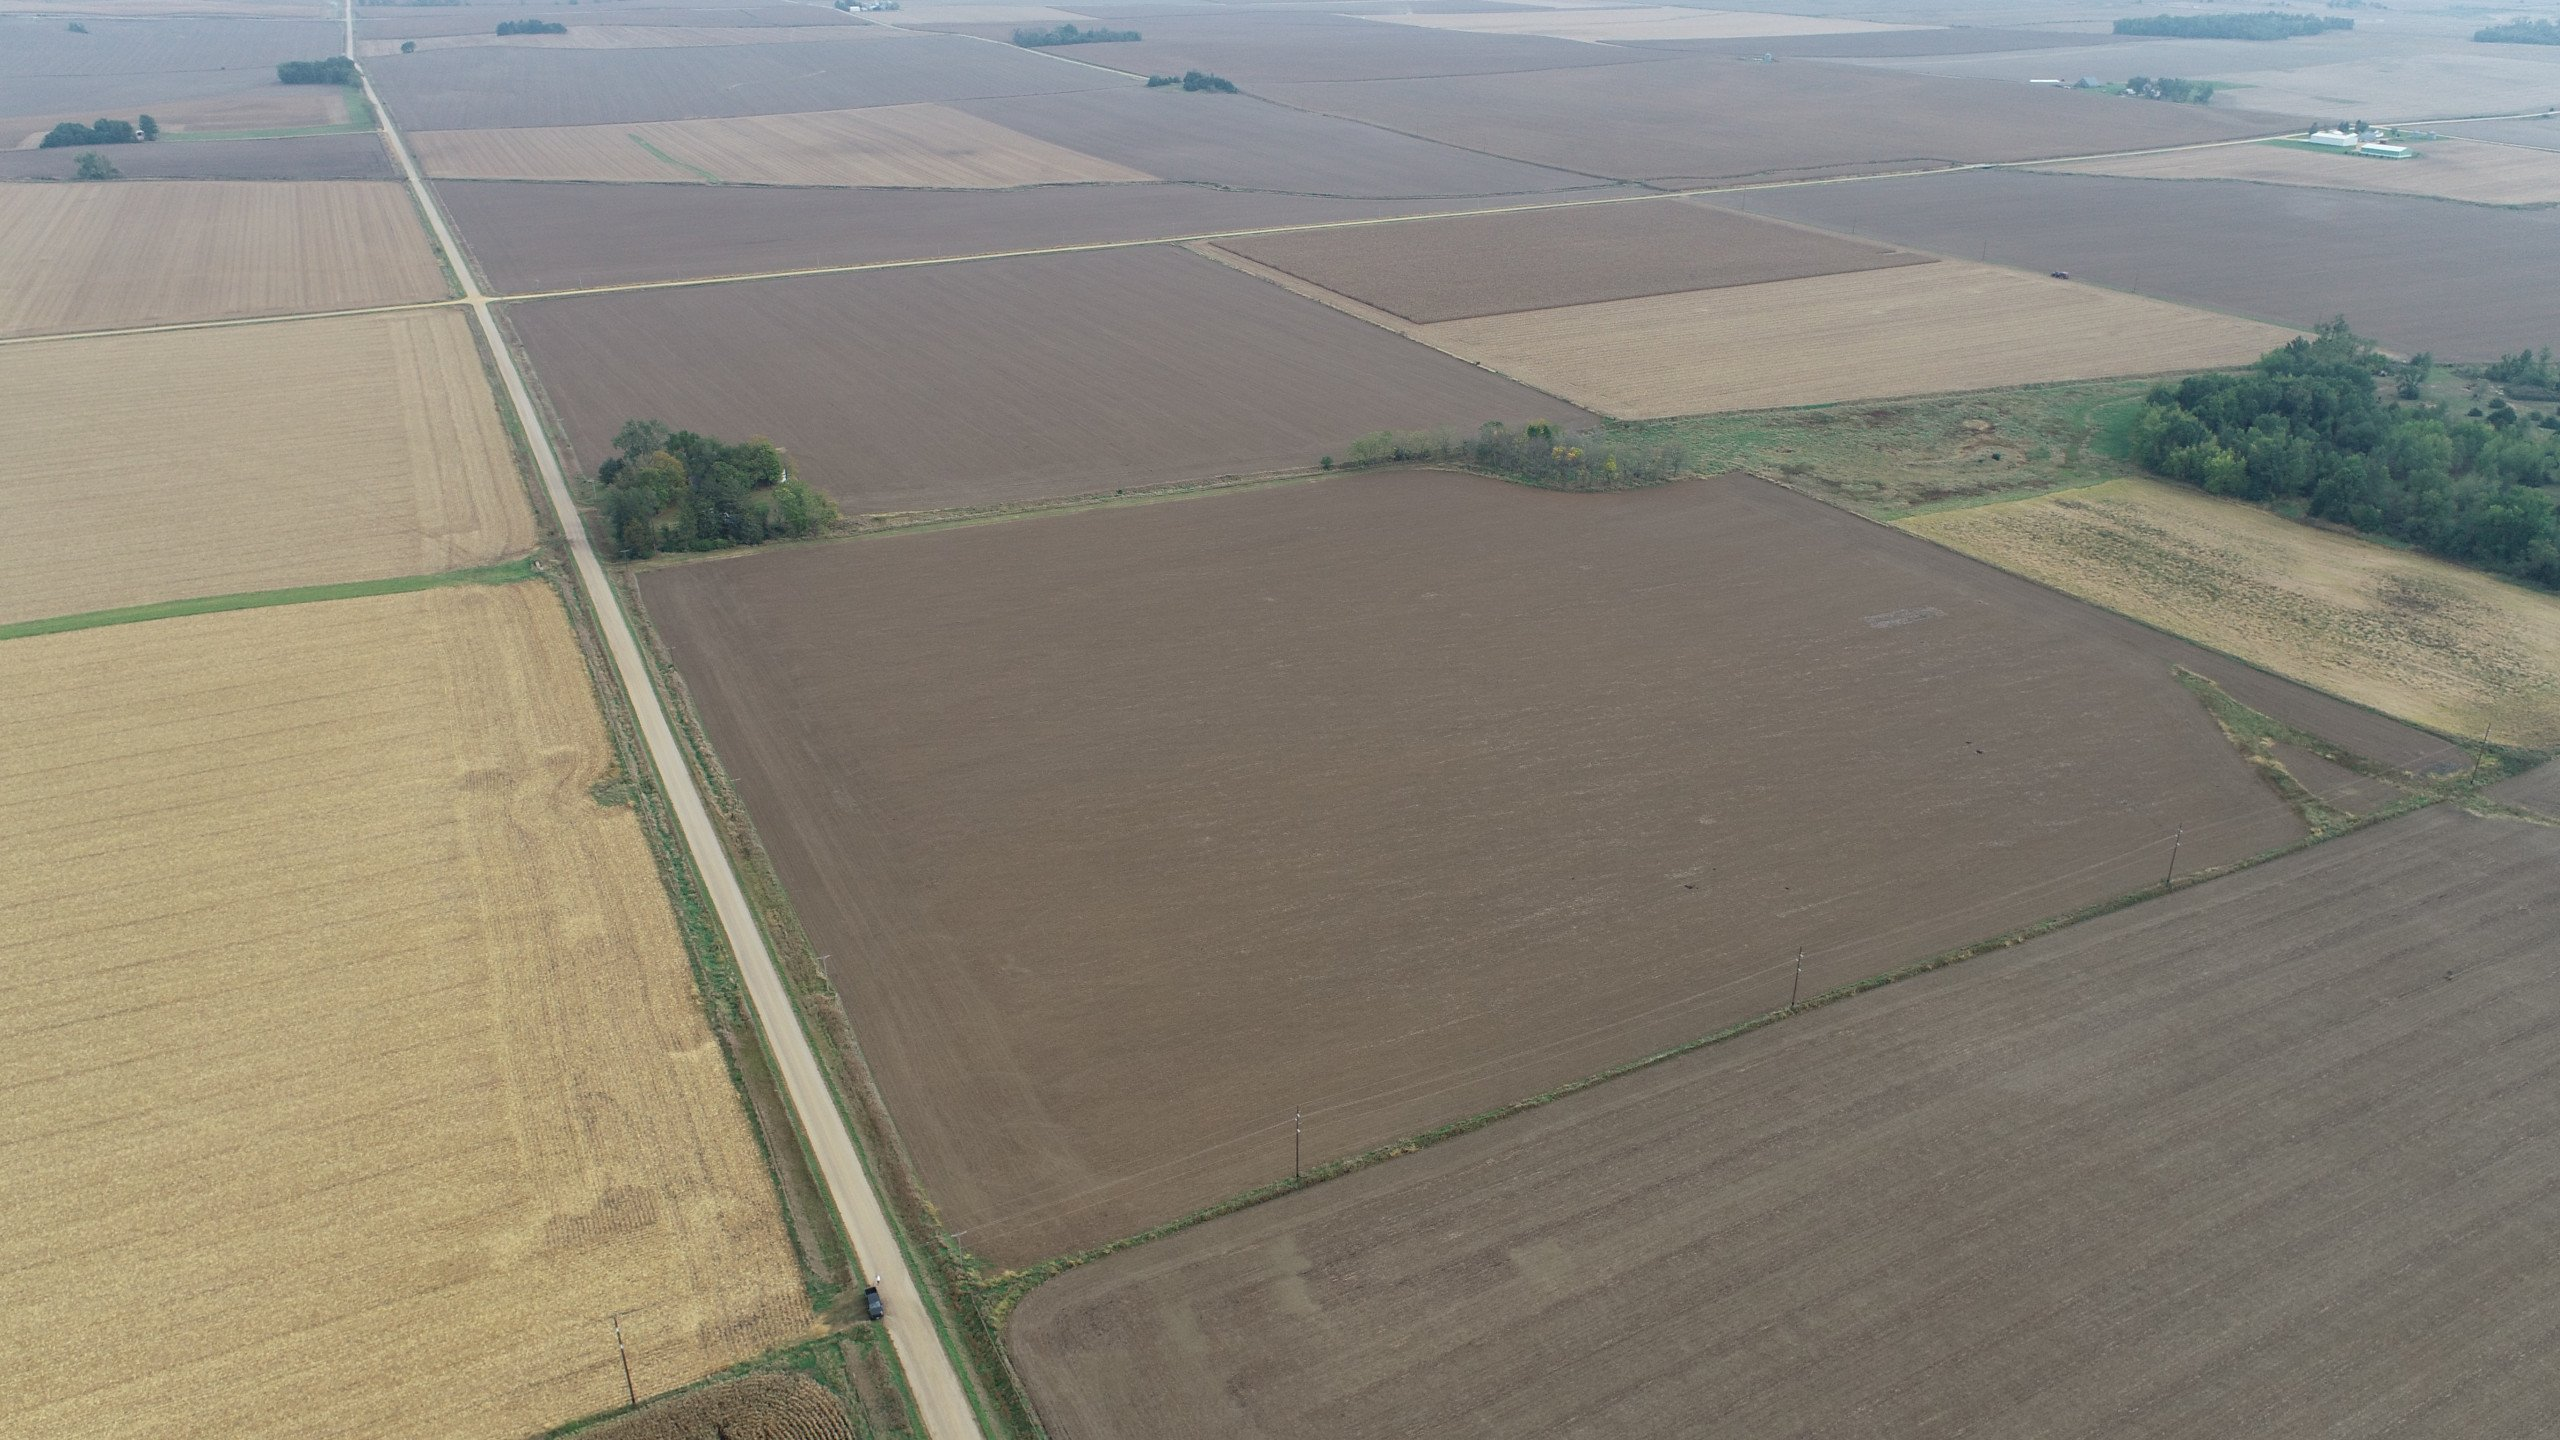 auctions-clinton-county-iowa-80-acres-listing-number-15792-DJI_0080-0.jpg